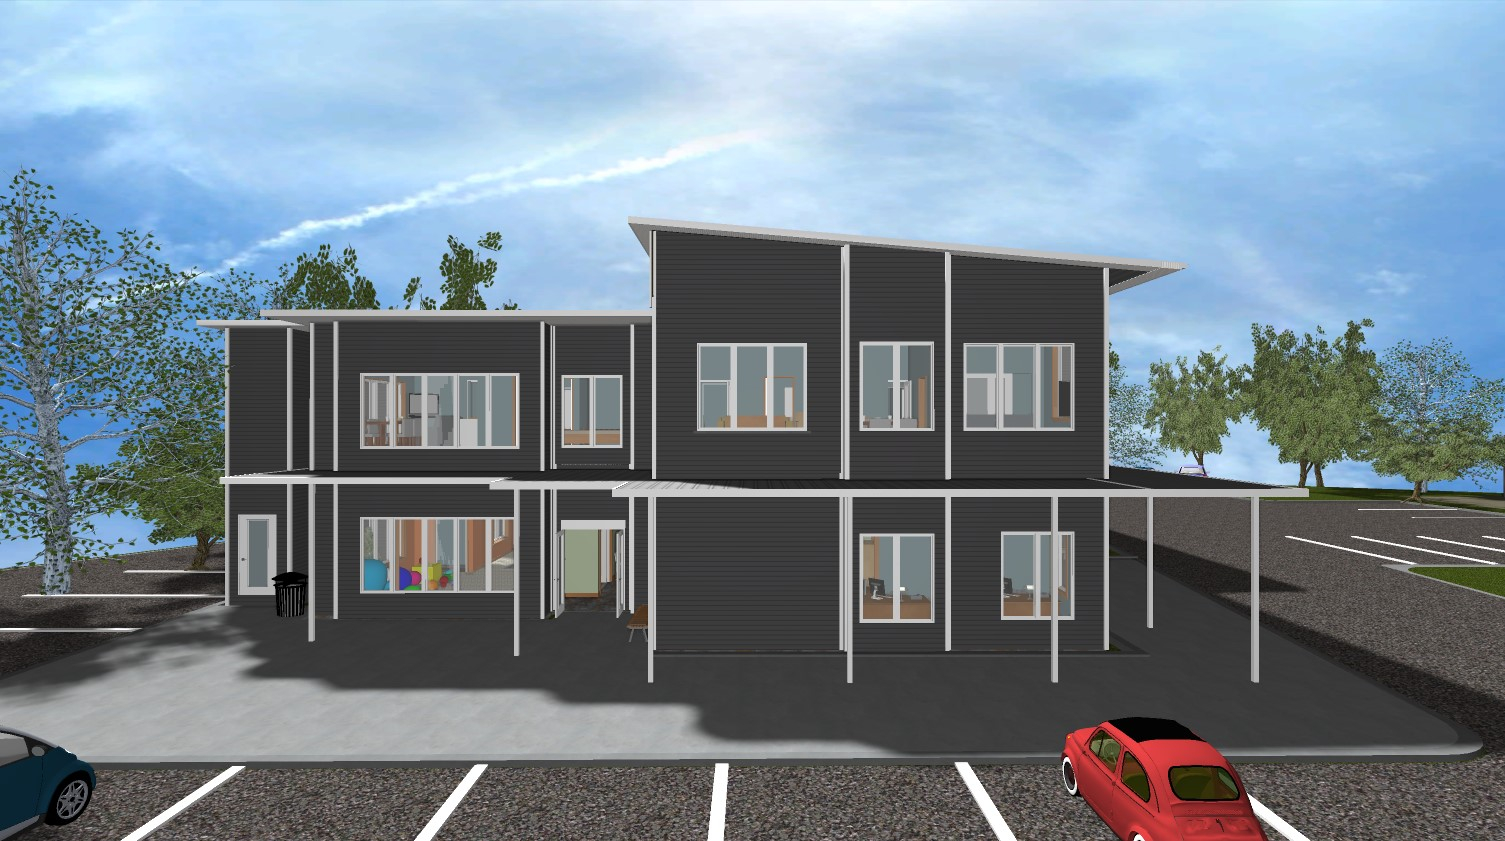 design build san juan friday harbor general contractor new home design build san juan saves you time and money by streamlining the design and general construction process with an in house team we are a licensed and